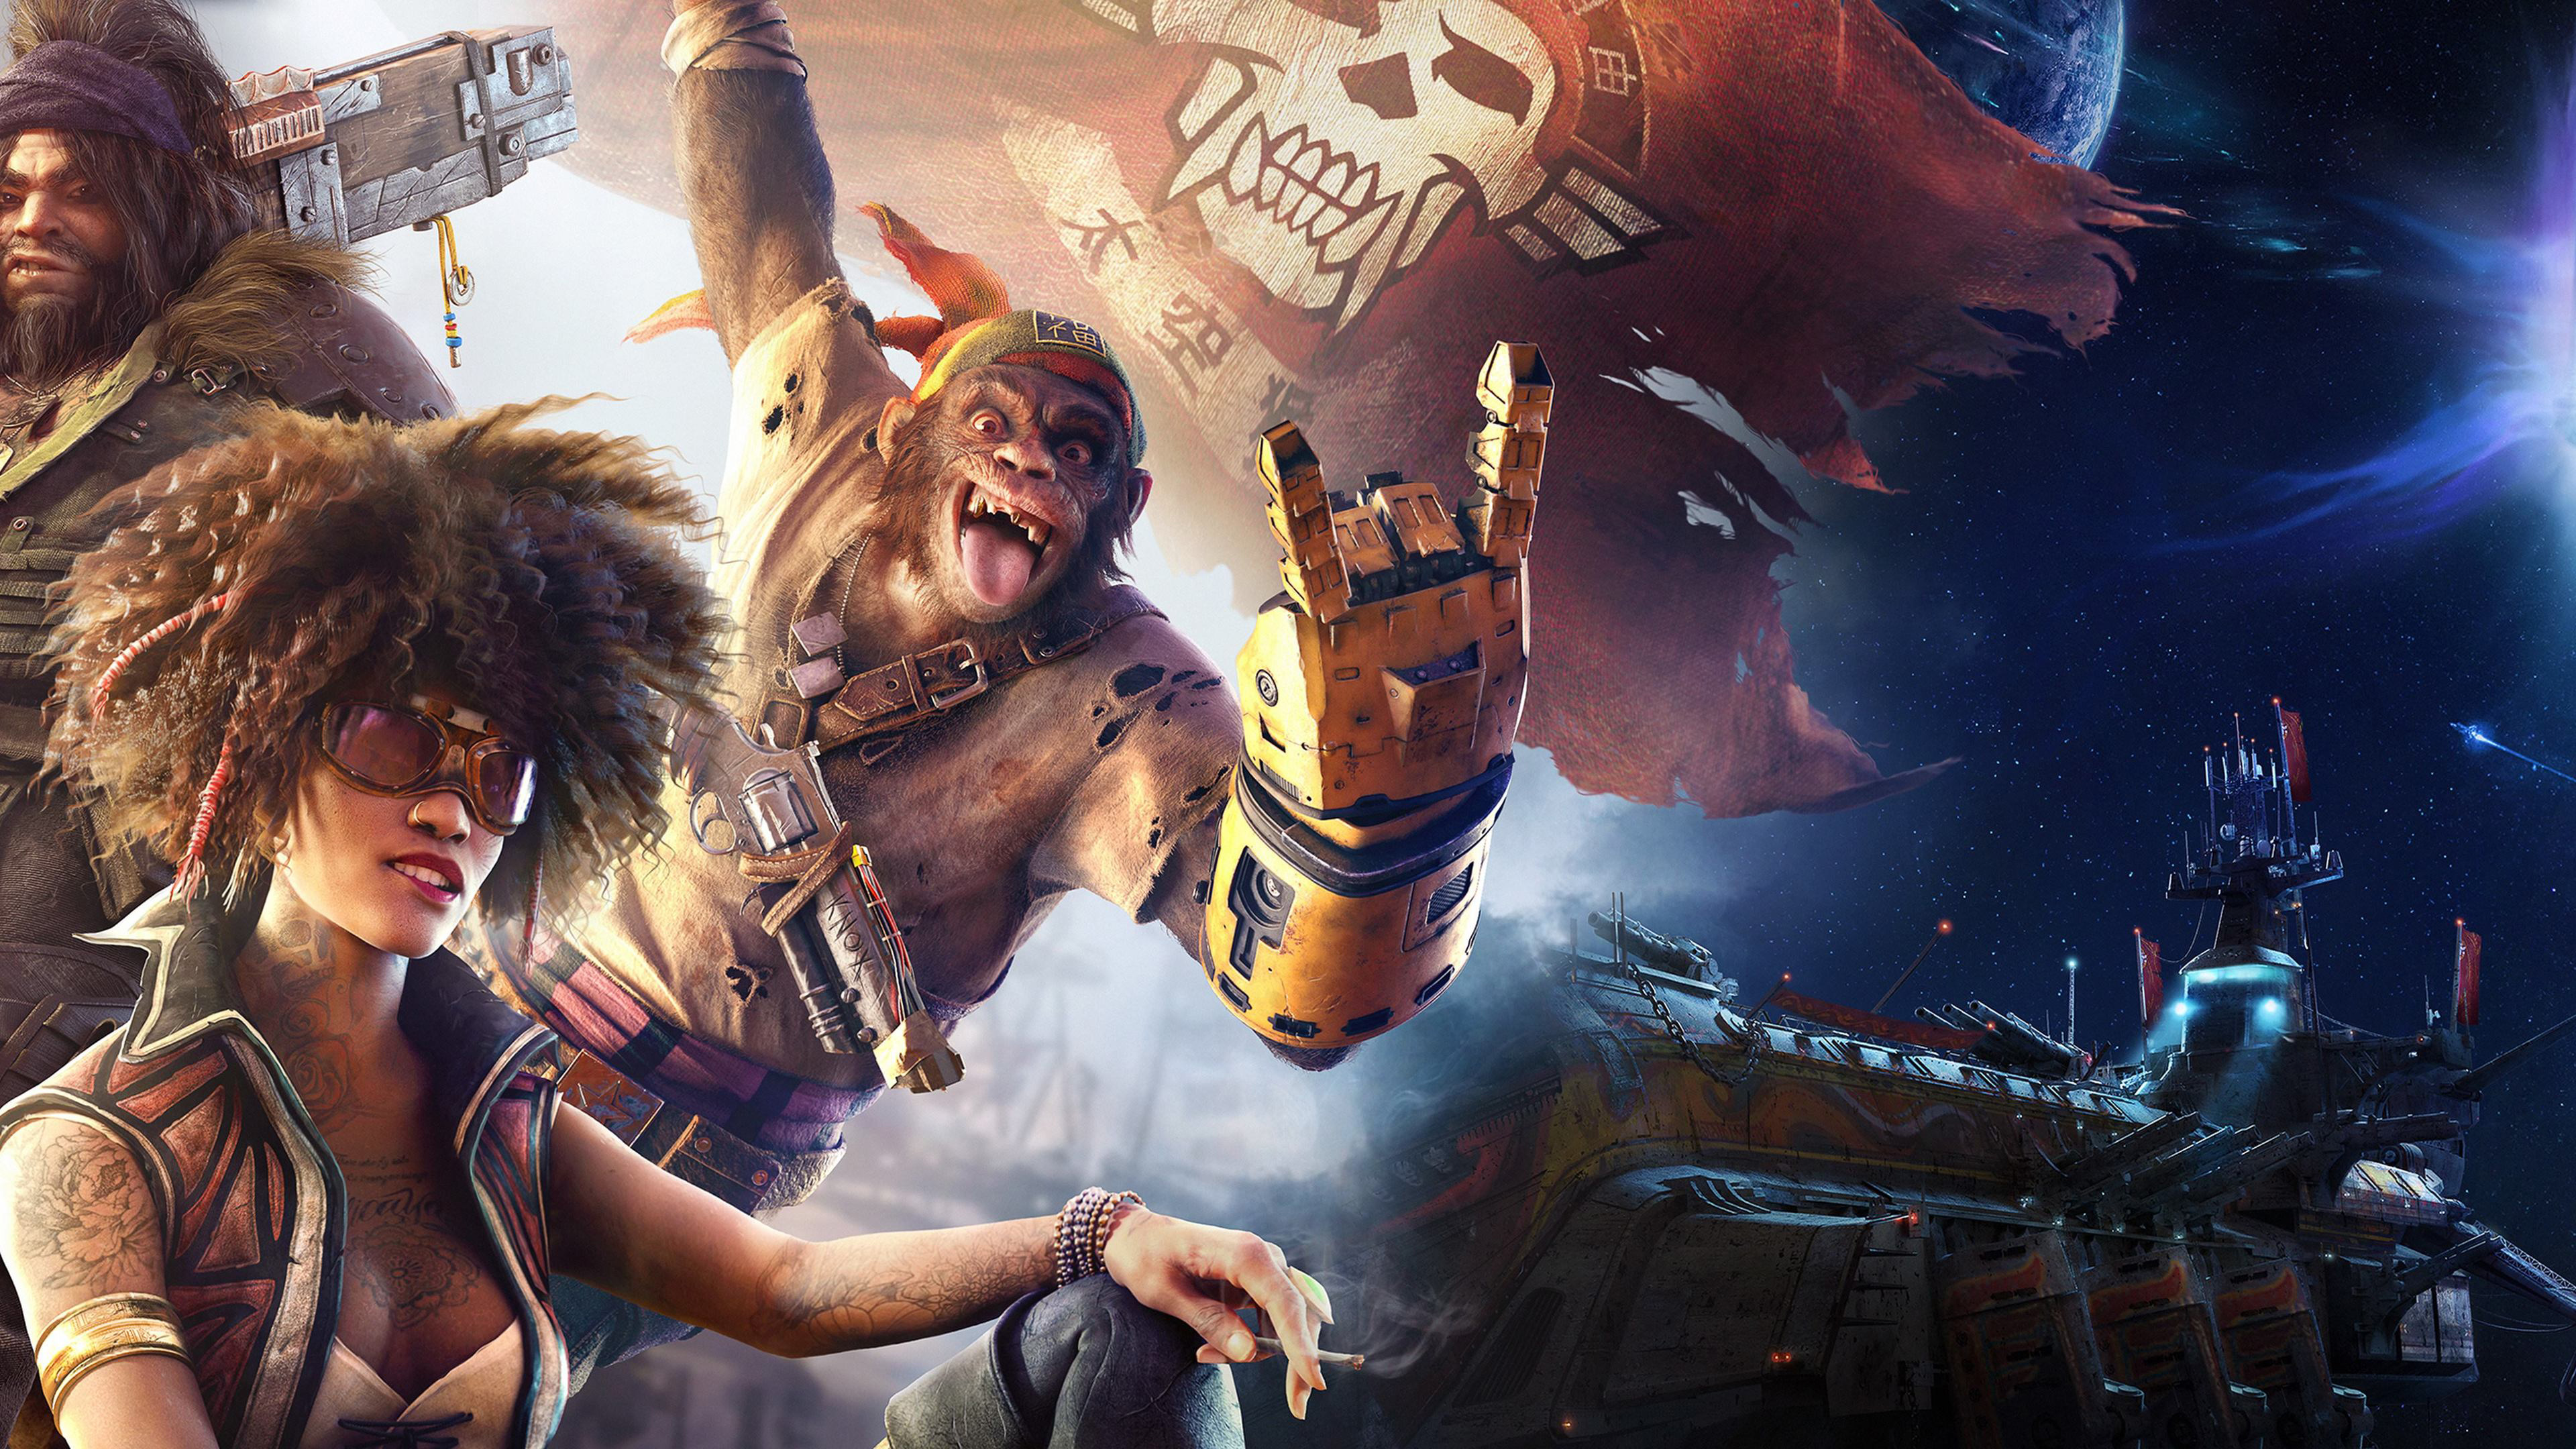 Beyond Good And Evil 2 Wallpapers In Ultra Hd 4k Gameranx